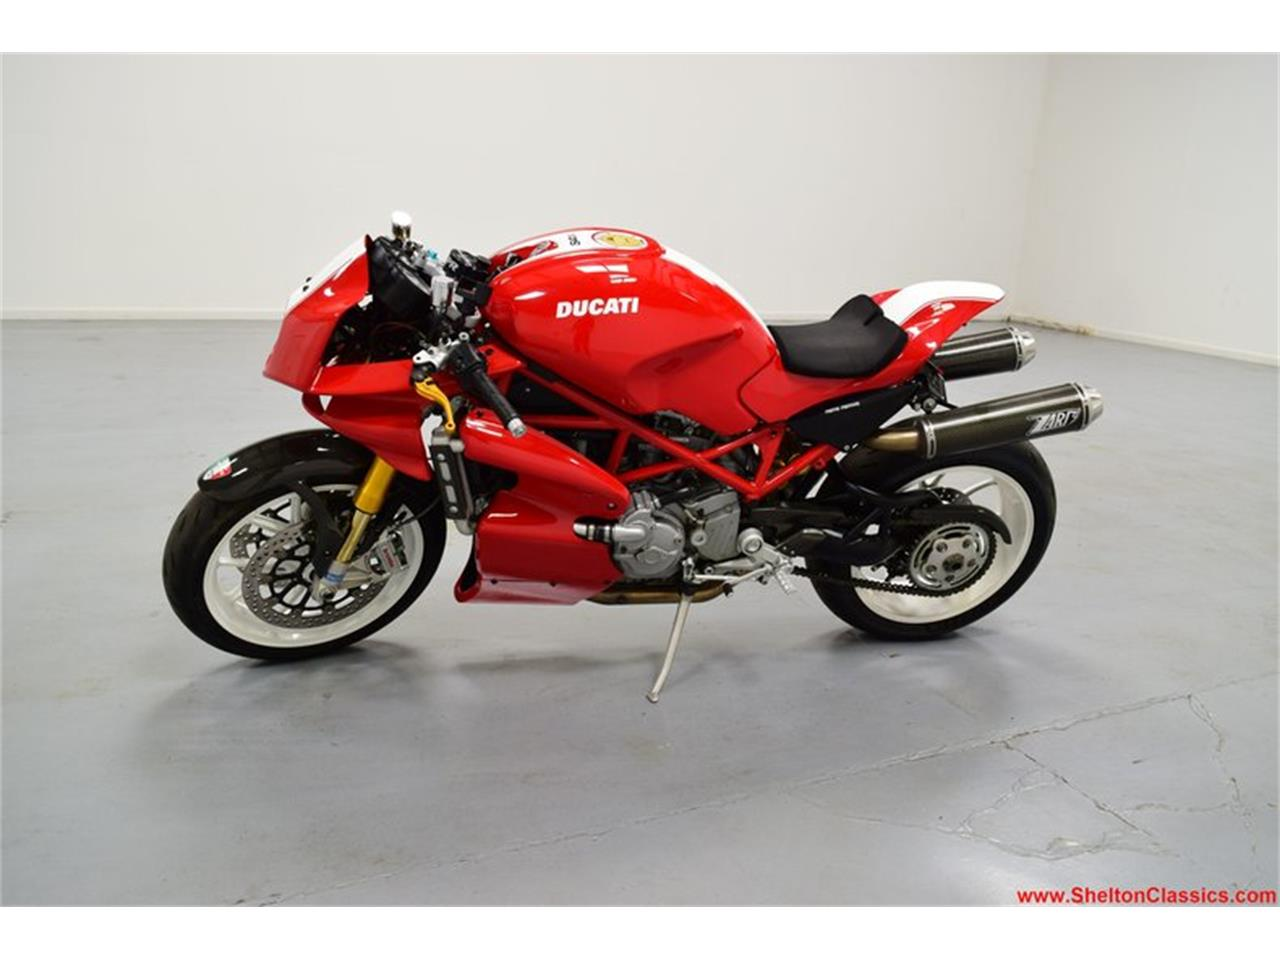 Large Picture of 2007 Ducati Monster located in North Carolina - $9,995.00 - PY15